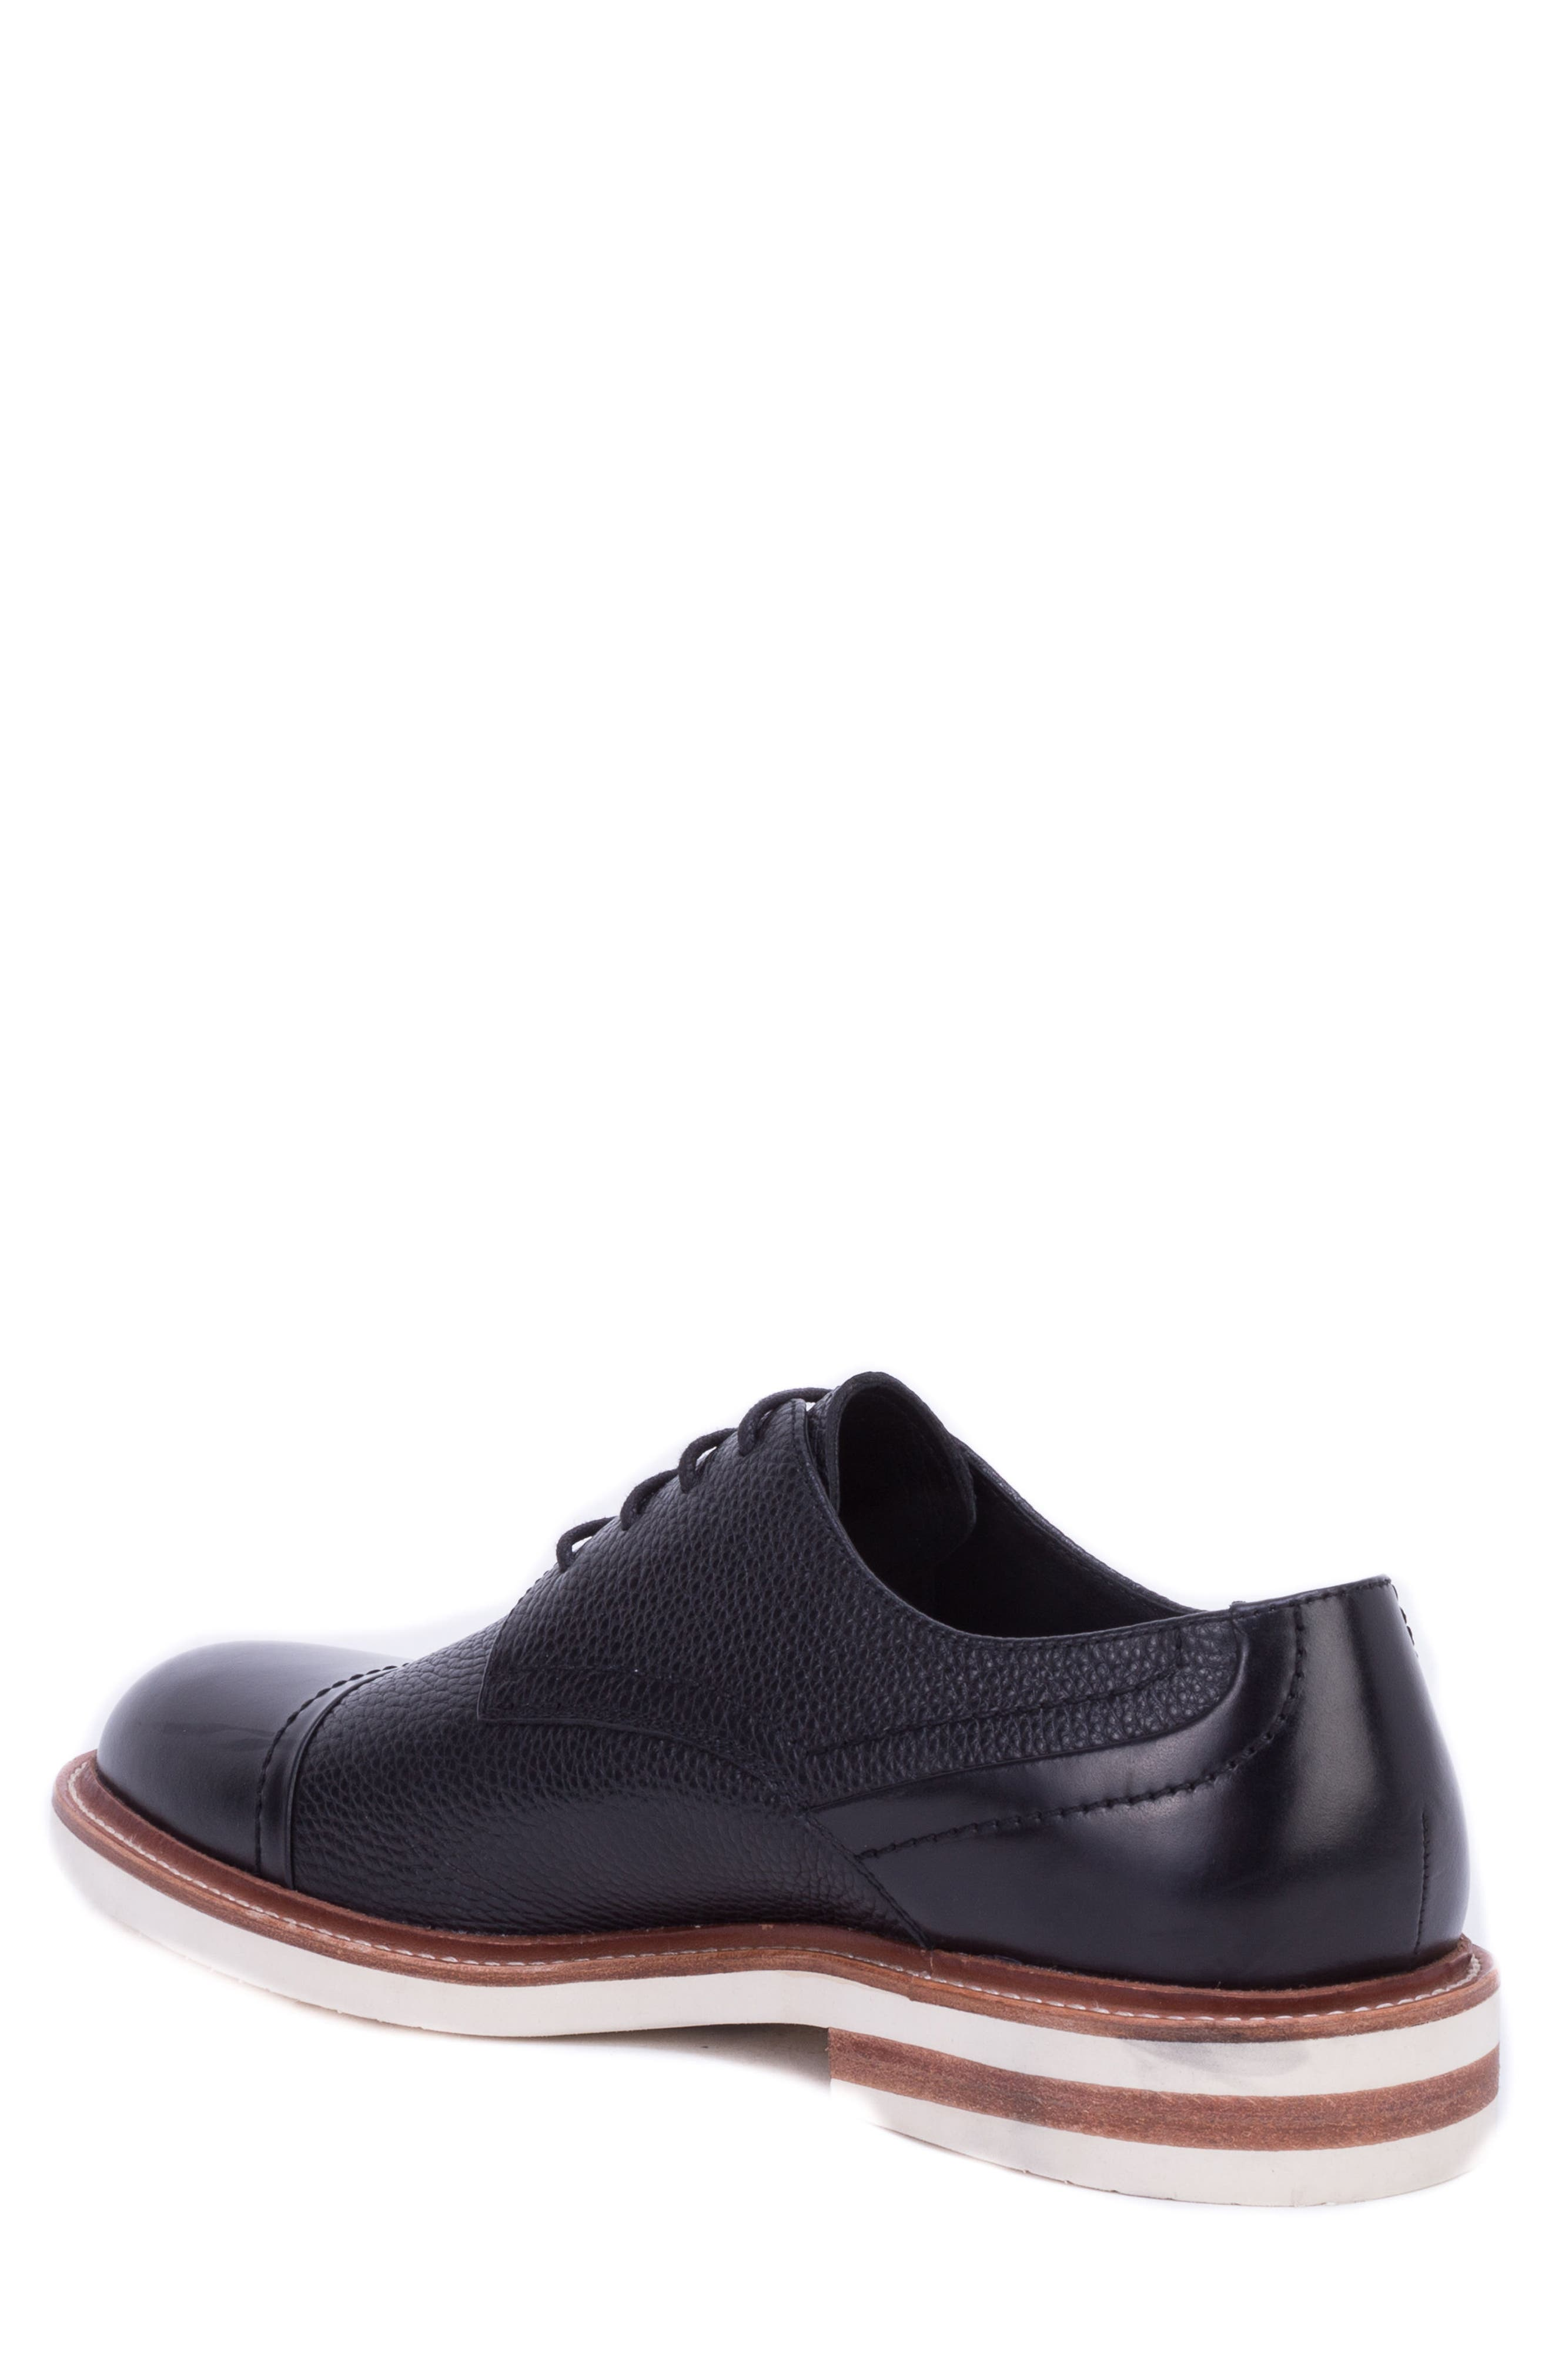 Wensley Cap Toe Derby,                             Alternate thumbnail 2, color,                             BLACK LEATHER